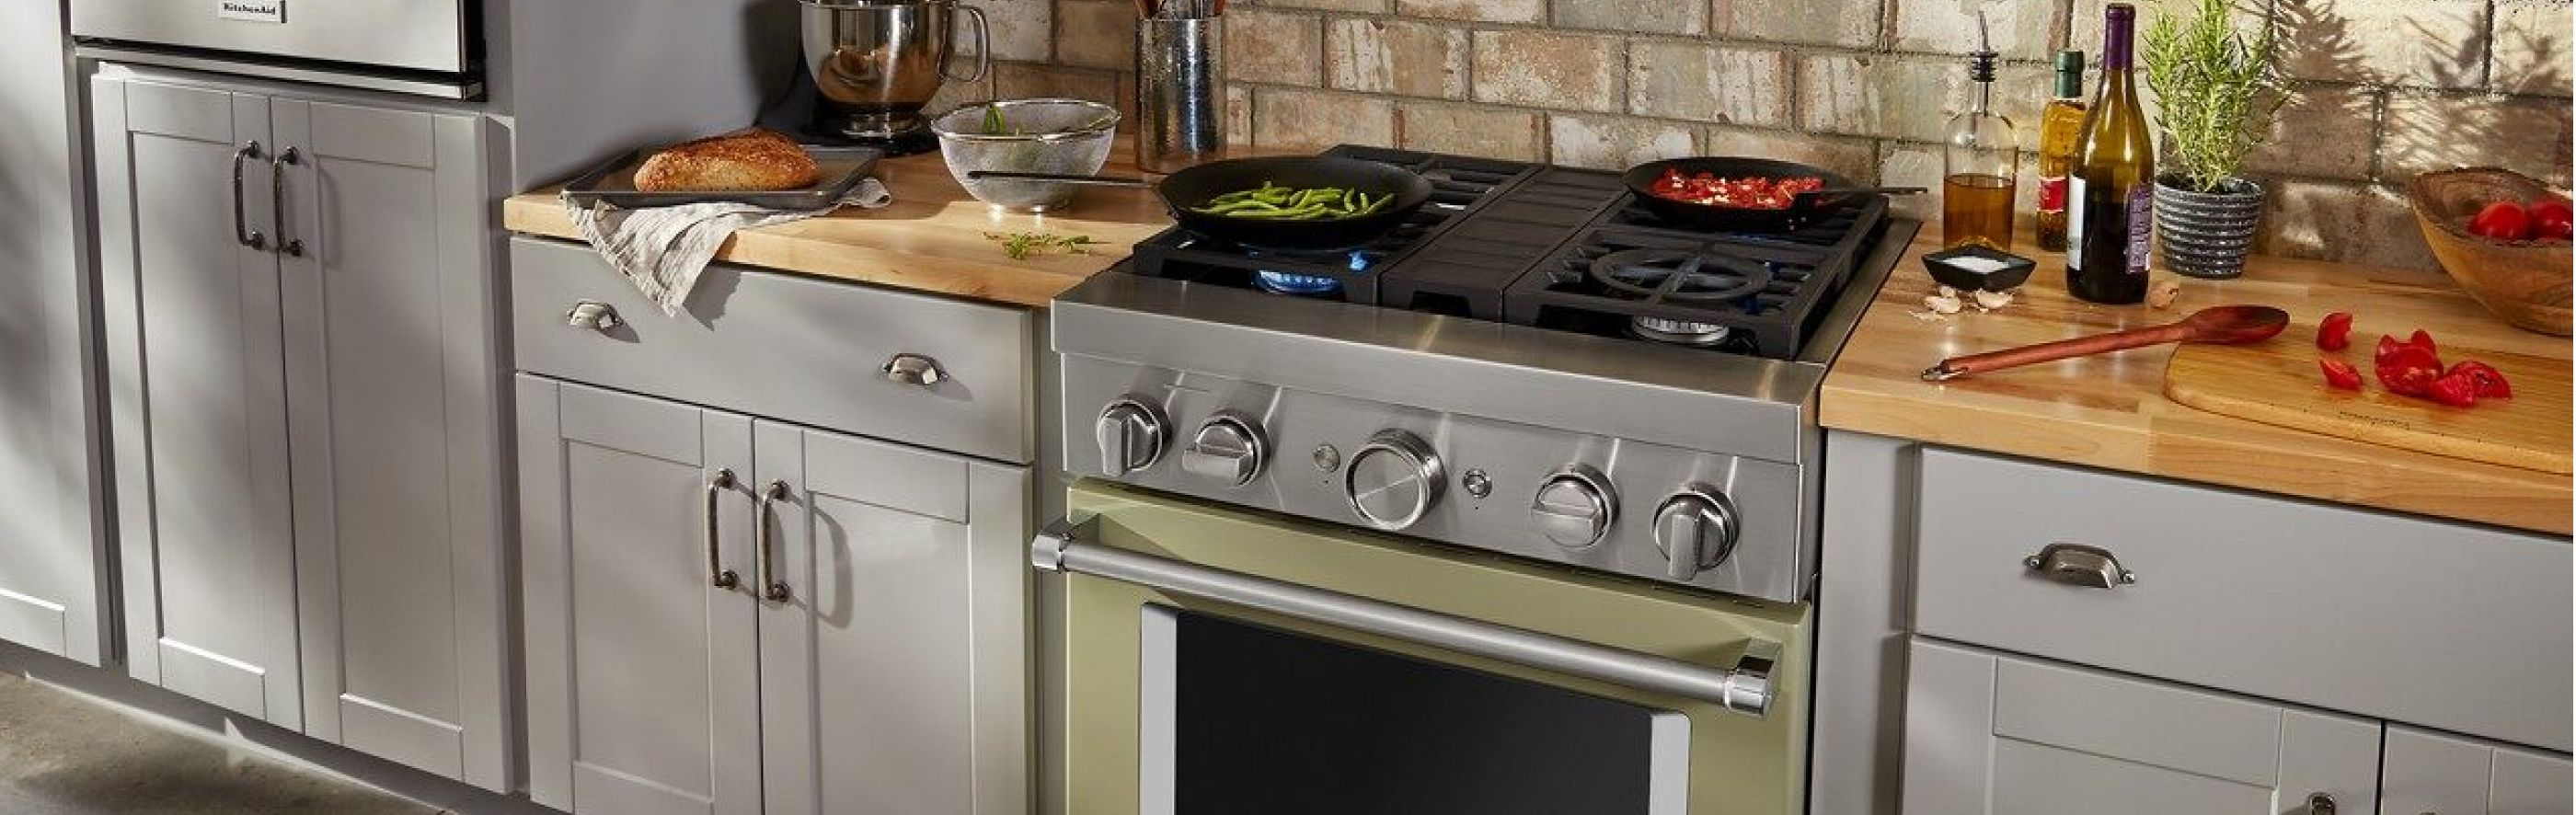 Food cooking on a commercial gas range